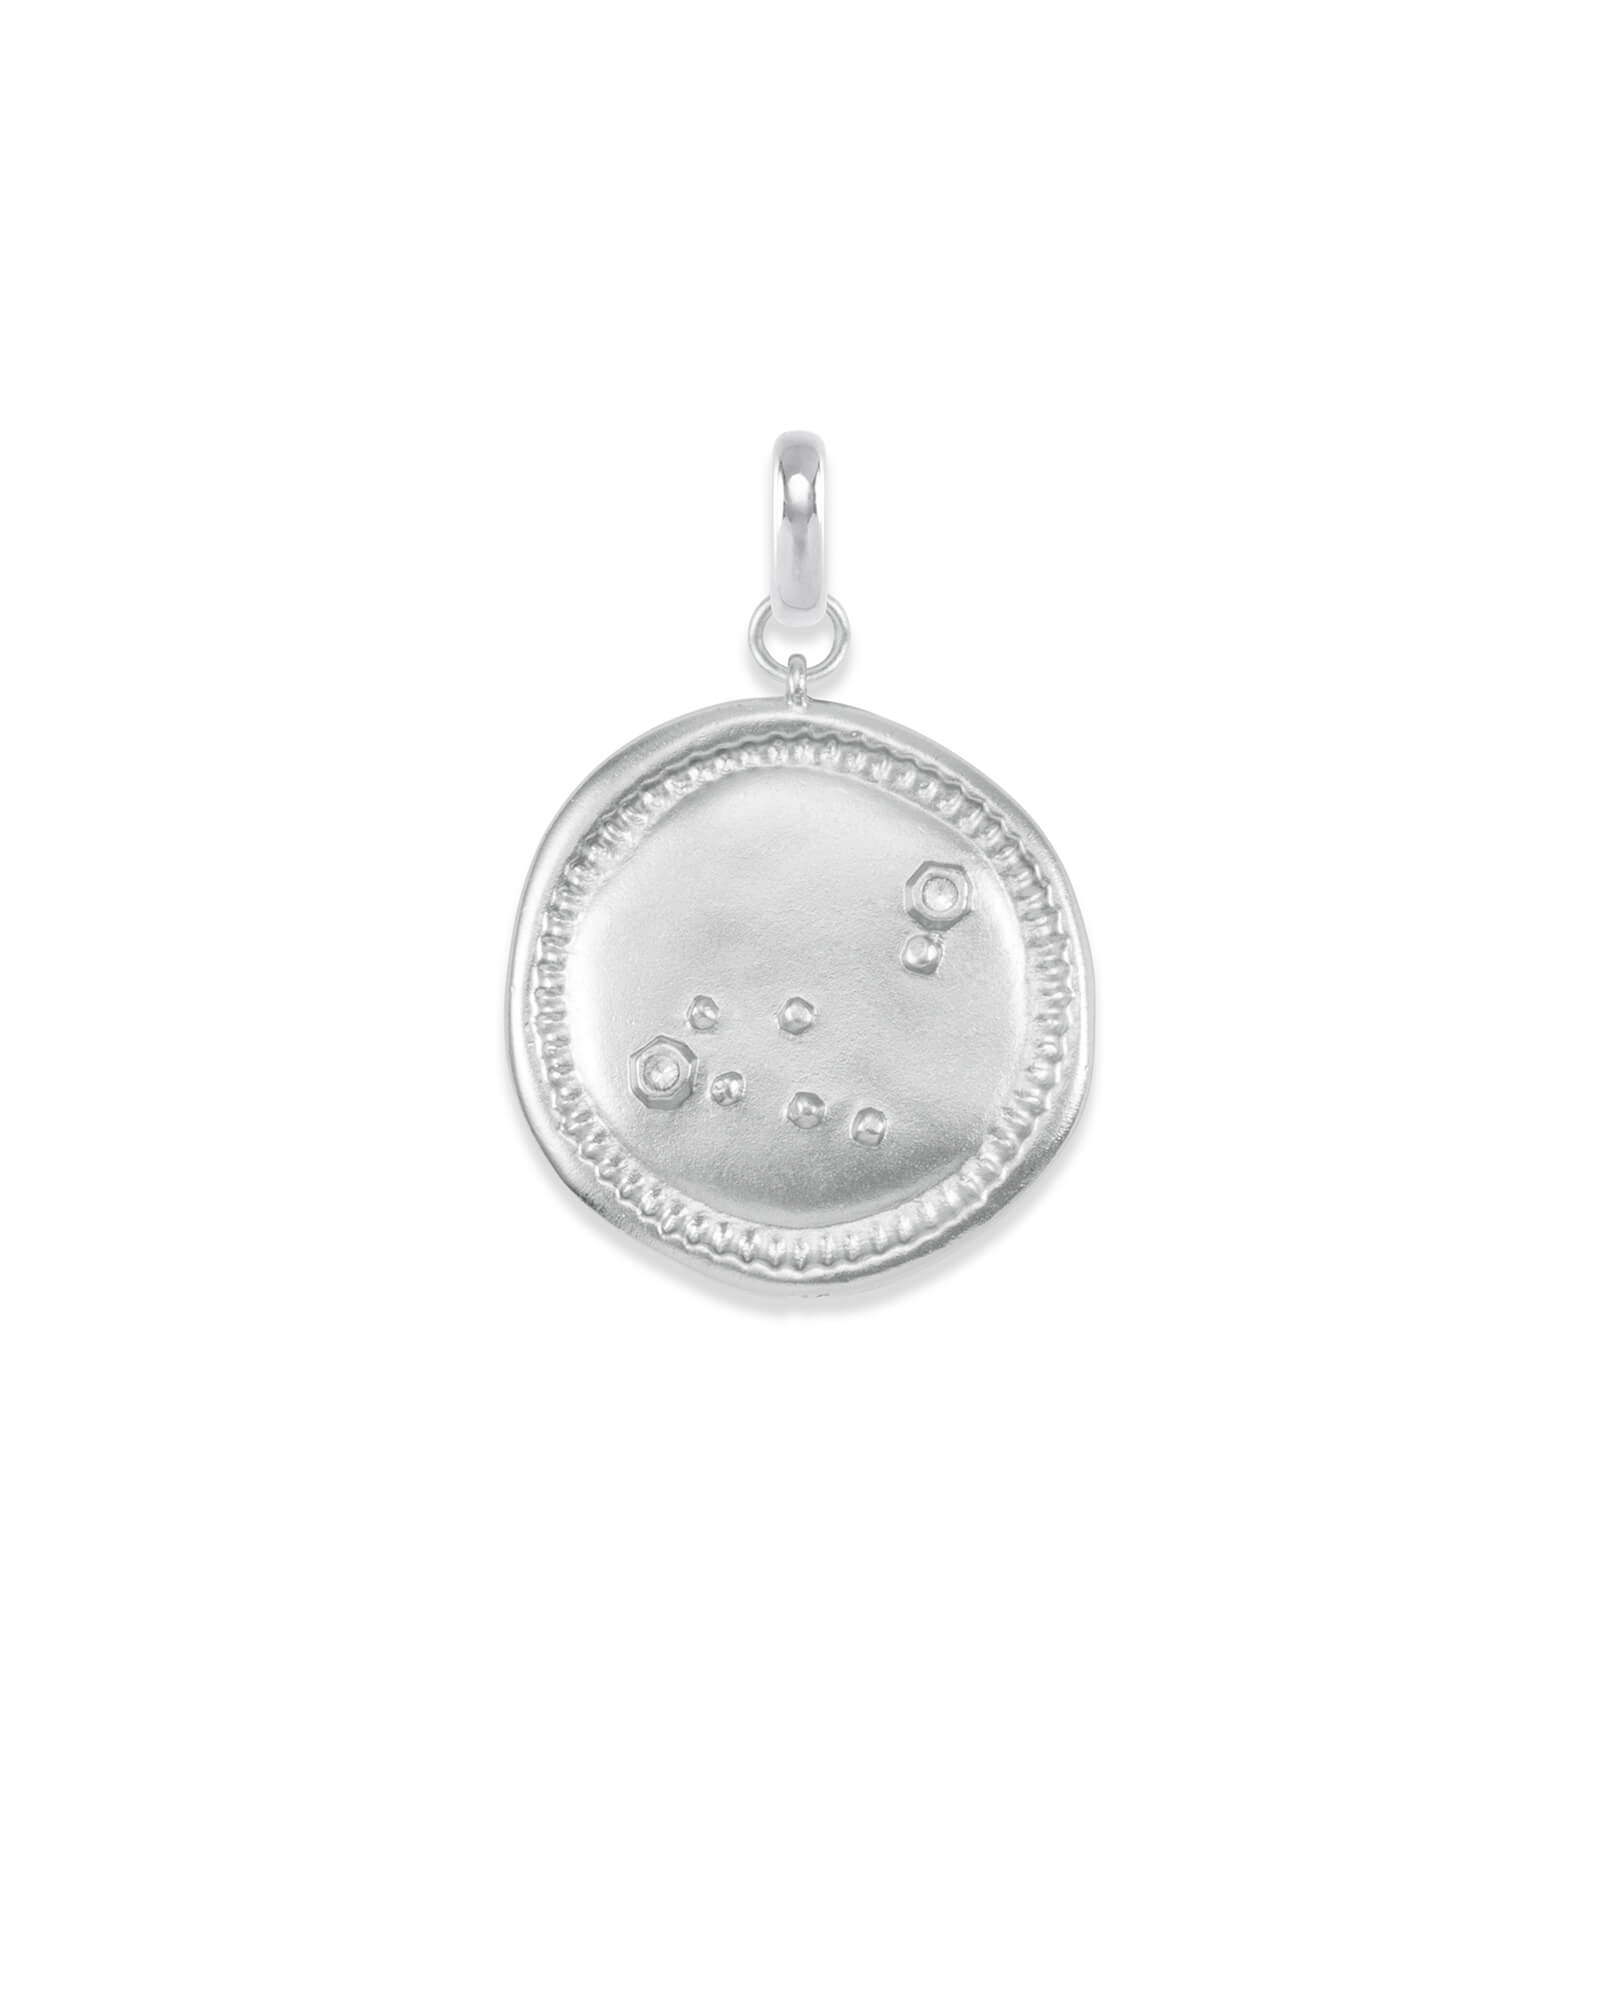 Capricorn Coin Charm in Silver